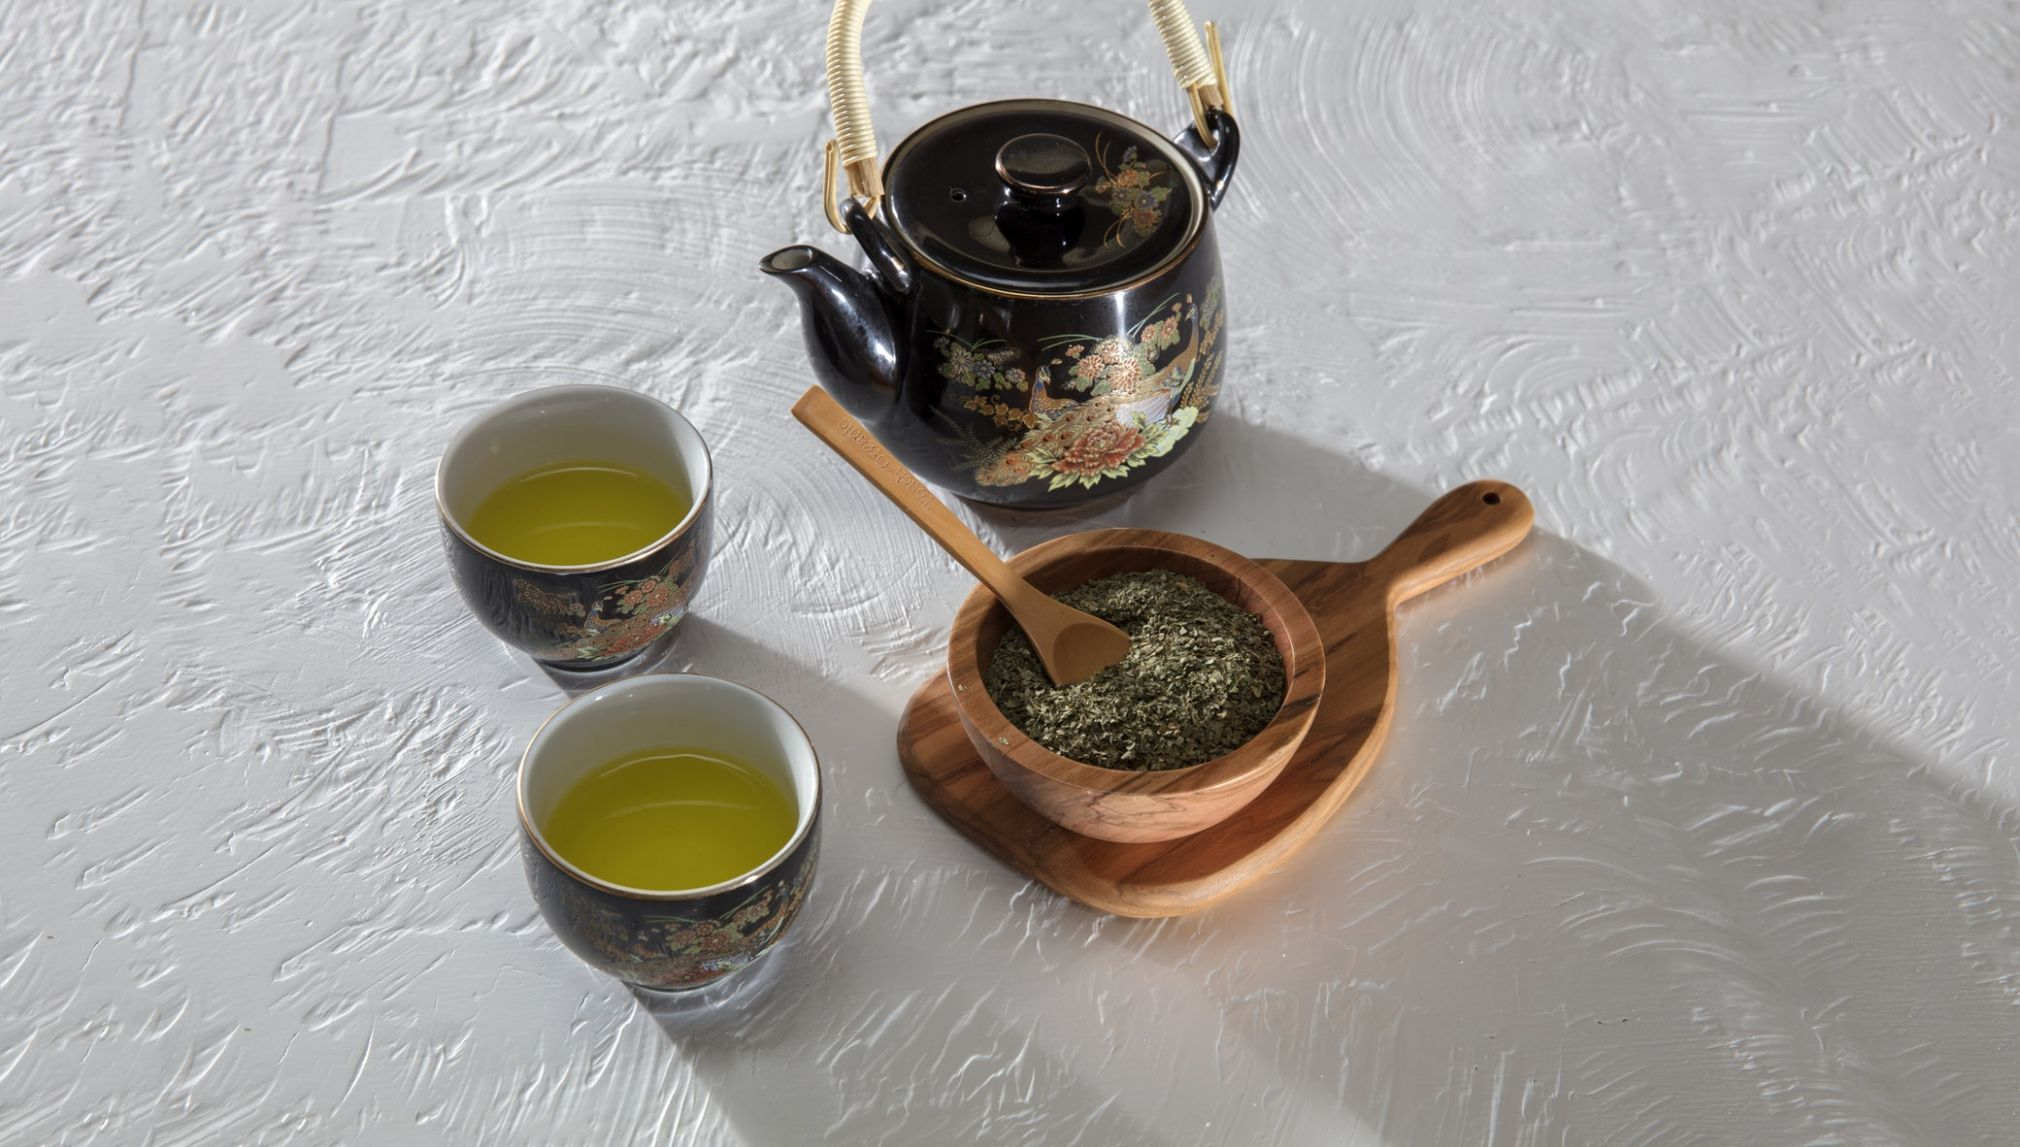 Green tea improves your skin by protecting it from sun damage, and contains antioxidant to keep you looking younger and more radiant.